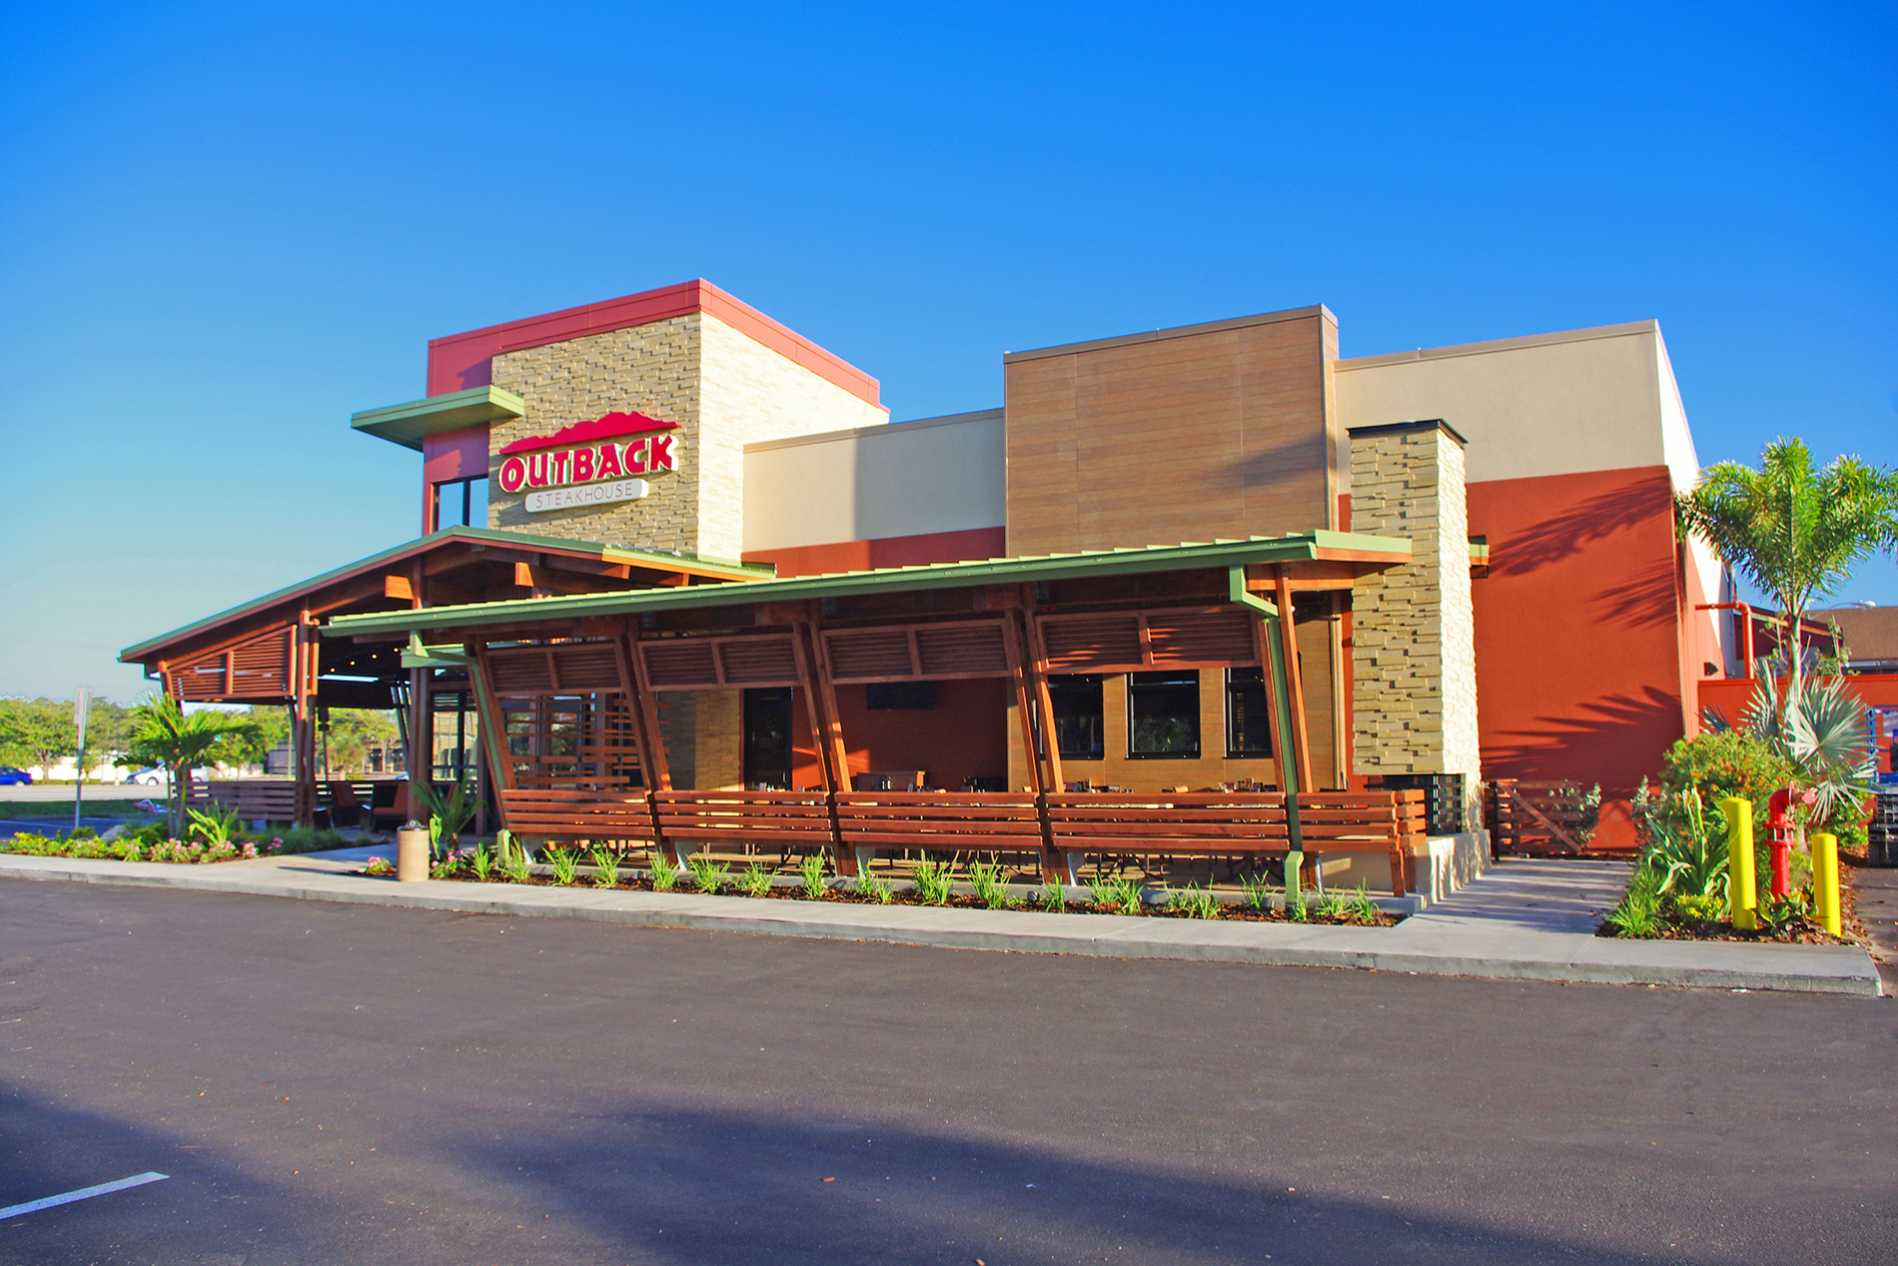 outback steakhouse Albuquerque ii/cottonwood, nm assistant culinary manager restaurant bartender restaurant host/hostess/server assistant restaurant kitchen staff - line cook/dishwasher restaurant server restaurant albuquerque, nm assistant culinary manager restaurant bartender restaurant host/hostess/ server assistant.